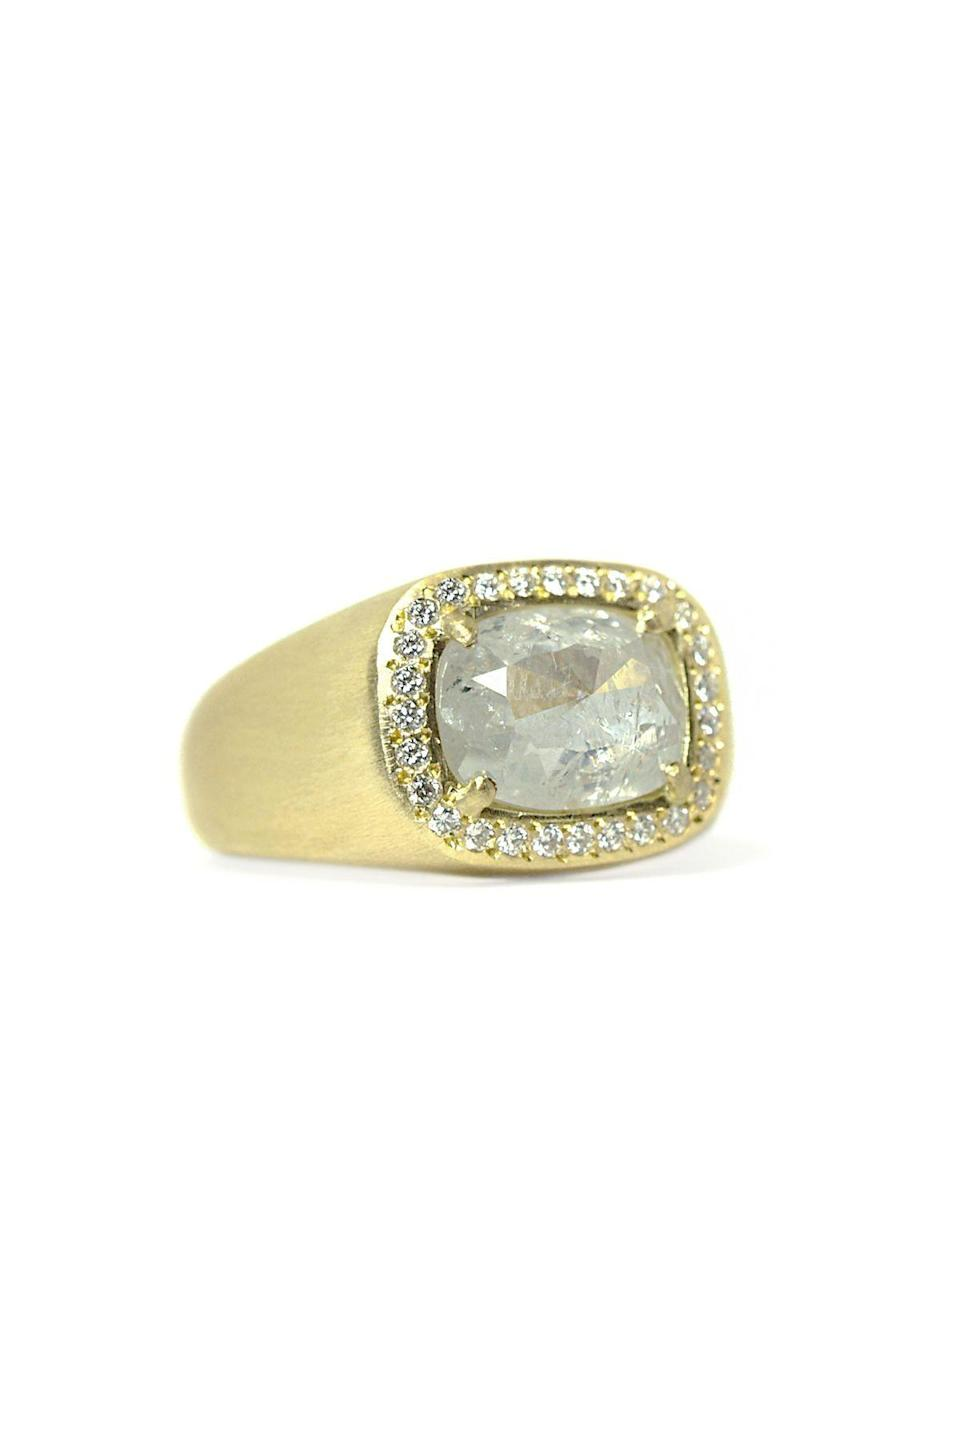 """<p><strong>Yasuko Azuma</strong></p><p>stylebymax.com</p><p><strong>$7260.00</strong></p><p><a href=""""https://stylebymax.com/shop/jewelry/rings/large-icy-diamond-ring/"""" rel=""""nofollow noopener"""" target=""""_blank"""" data-ylk=""""slk:Shop Now"""" class=""""link rapid-noclick-resp"""">Shop Now</a></p><p>The combination of a two-carat gray diamond and matte gold is super chic. The thick band adds a nice heft that is sure to catch everyone's eye.</p>"""